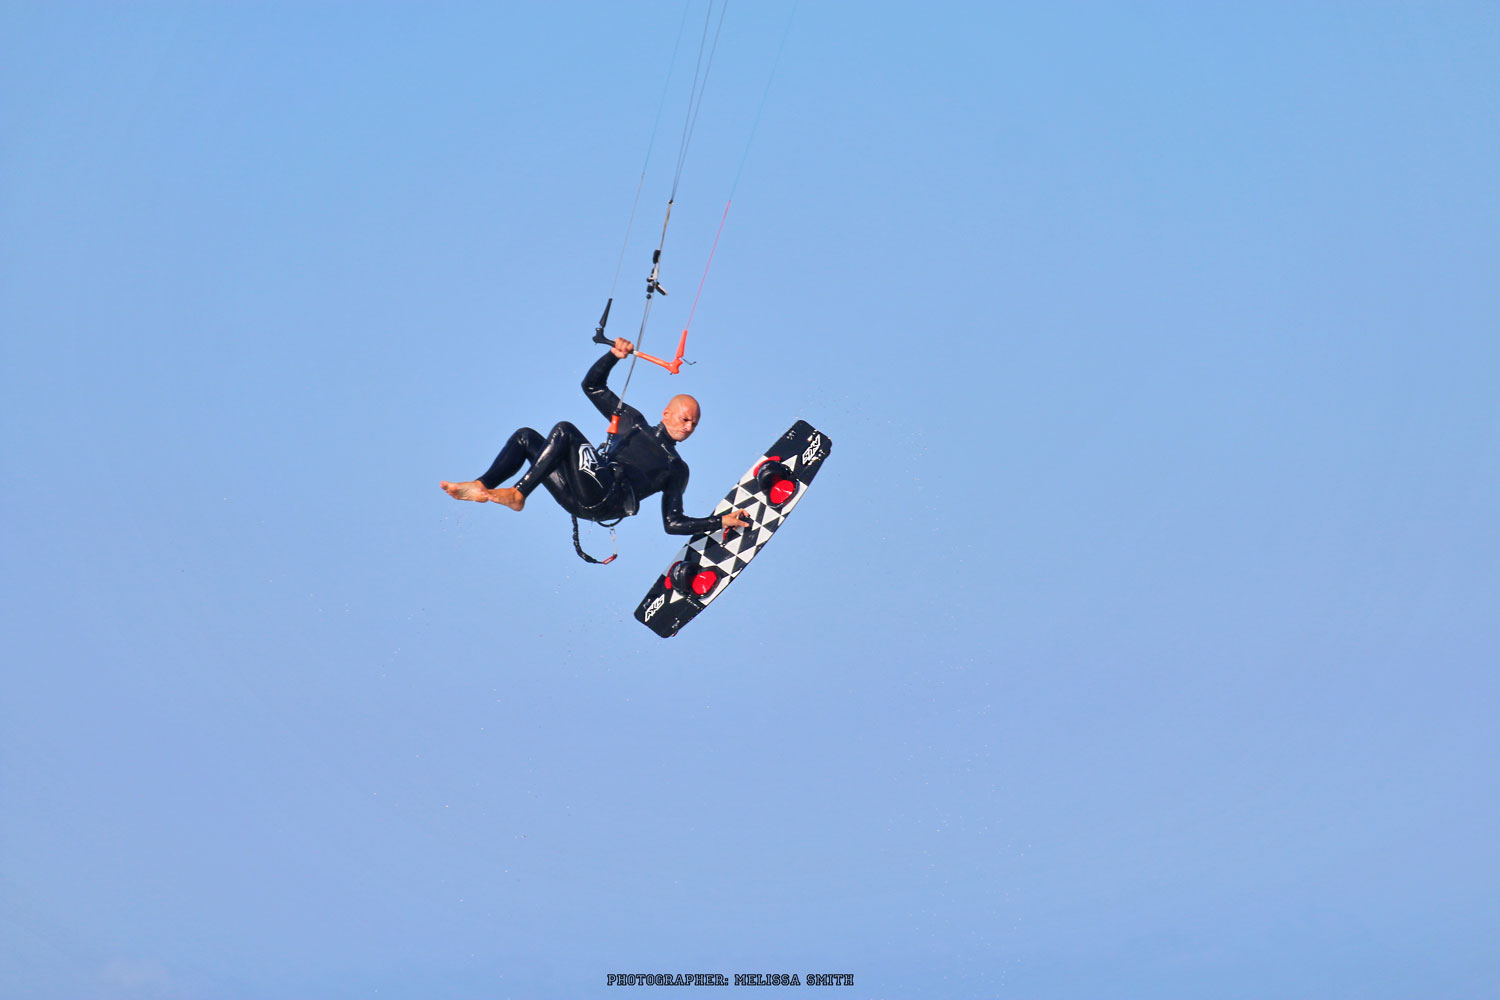 Airstyle - Old School - back to the roots - Ced's Kiting Blog